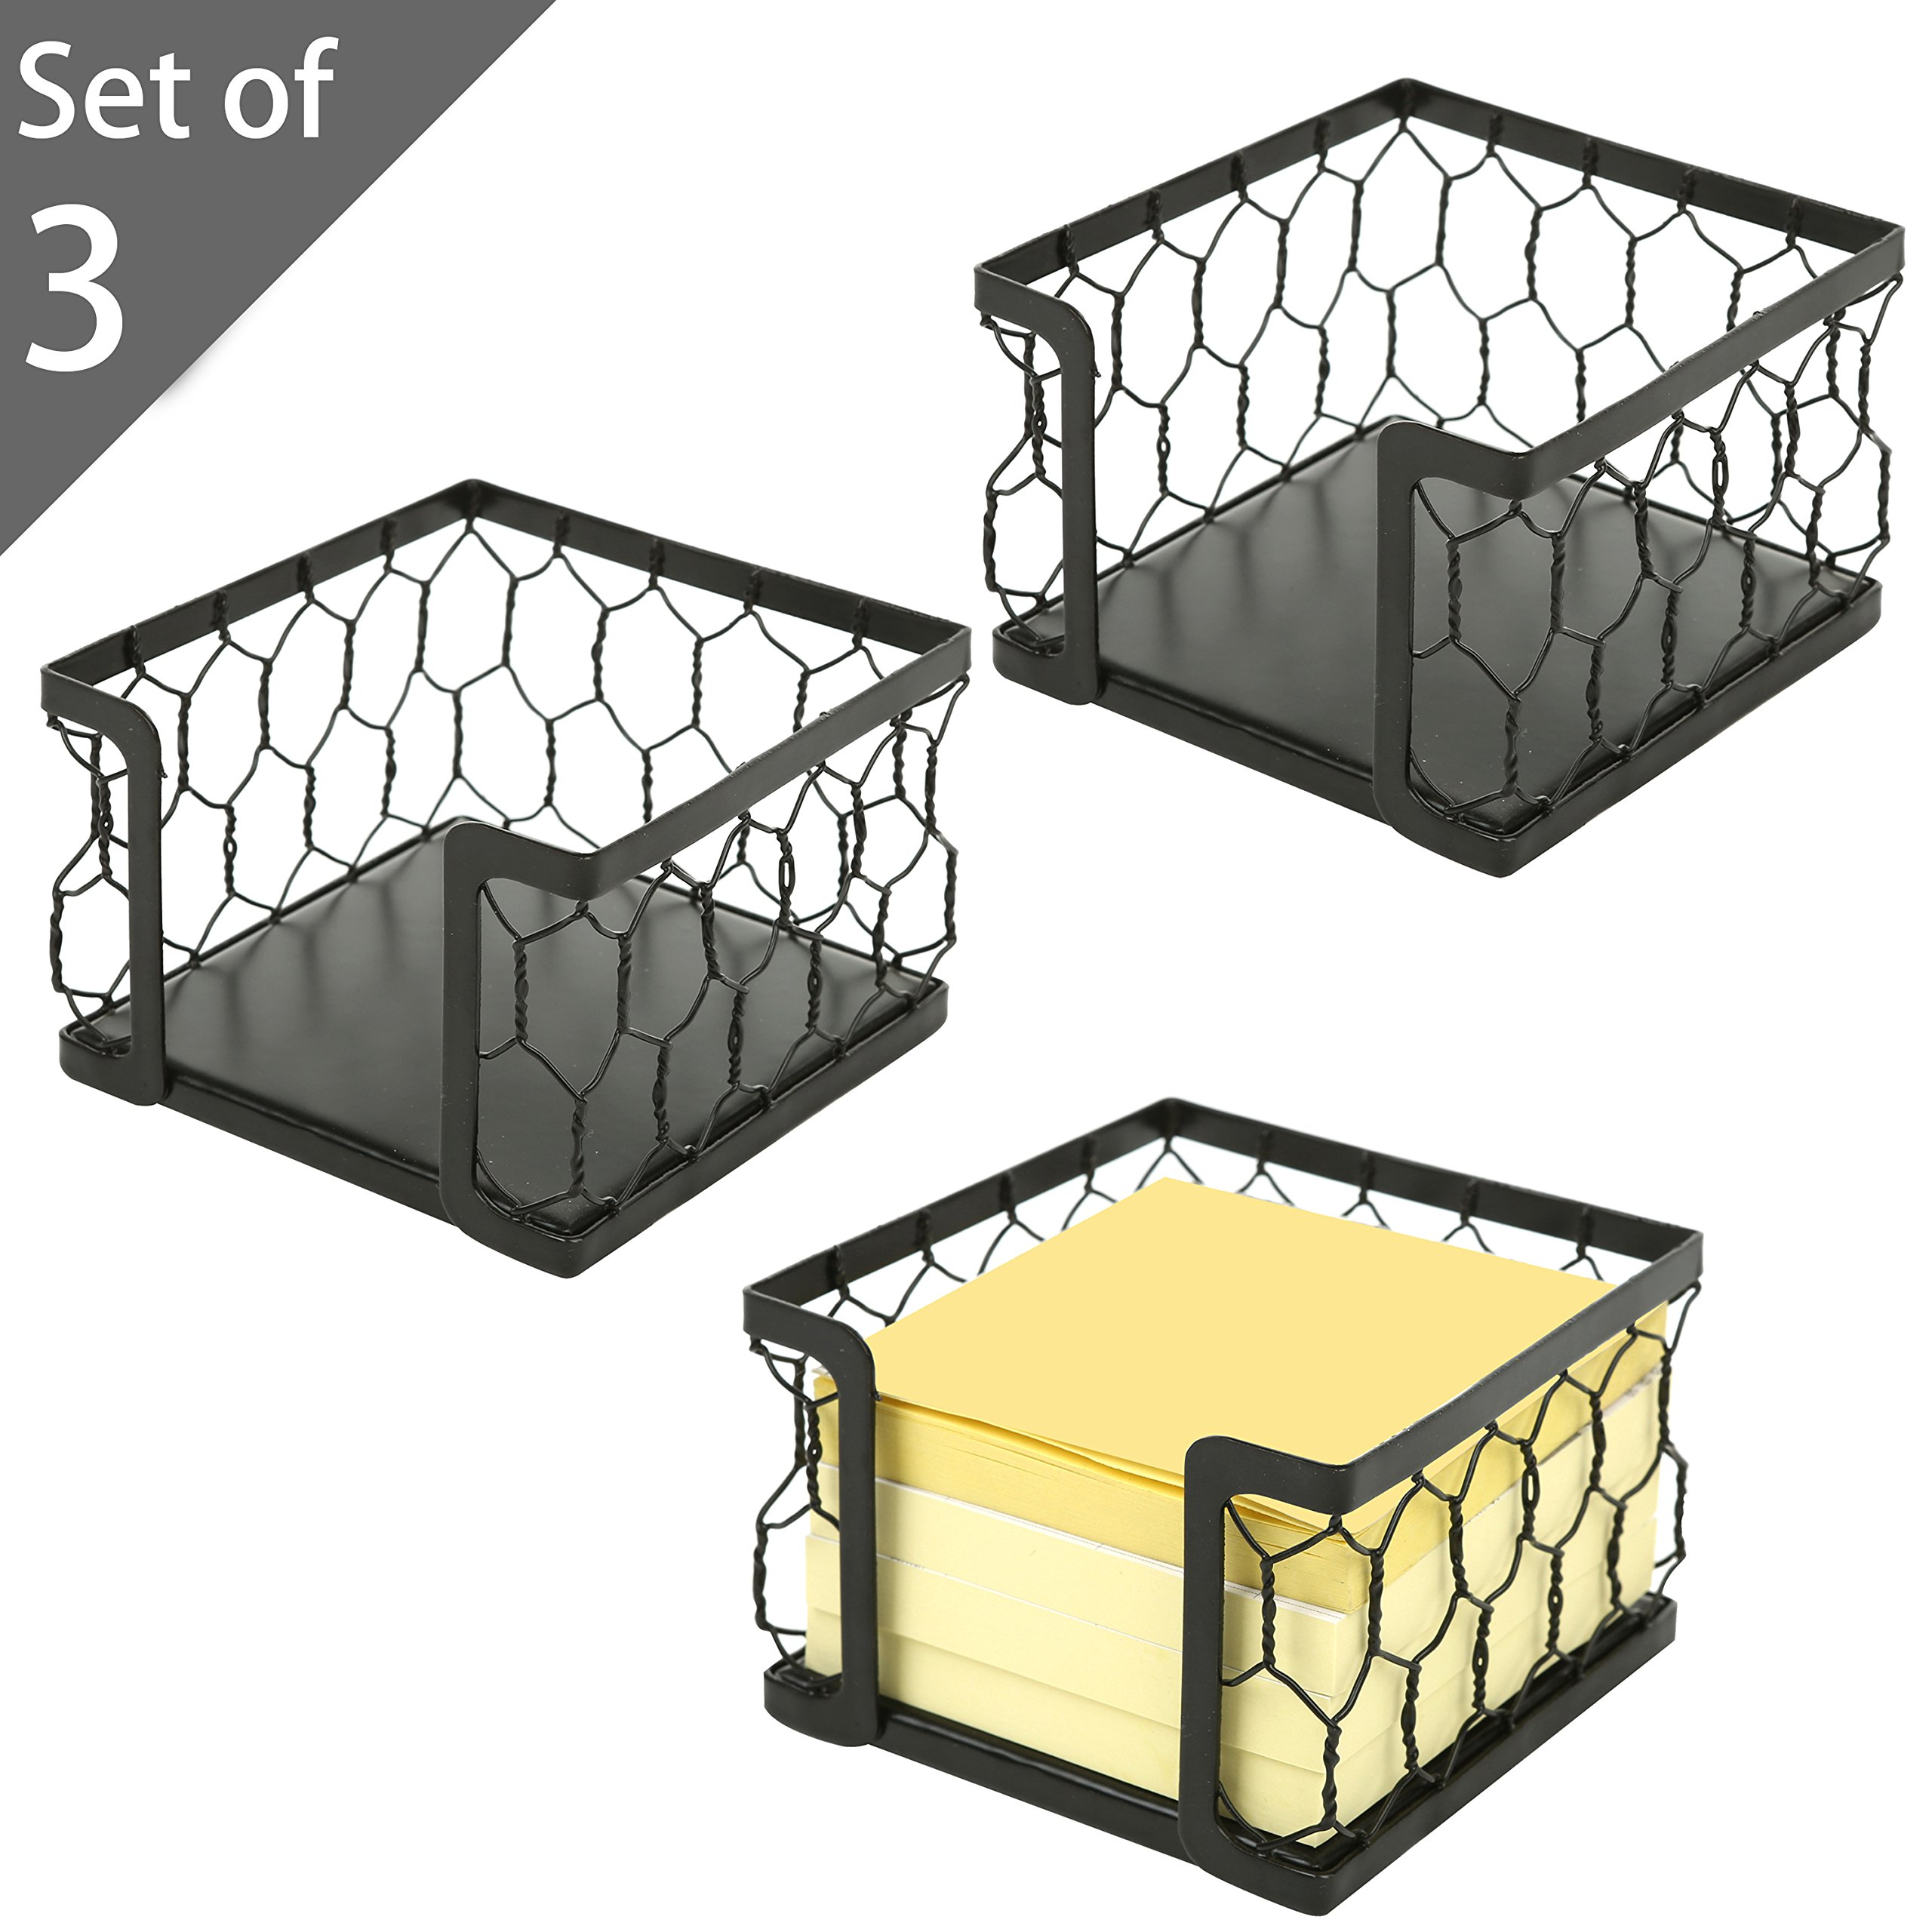 3 X 3 Metal Chicken Wire Mesh Sticky Note Dispensers, Office Memo Pad Holder with Black Matte Finish, Set of 3